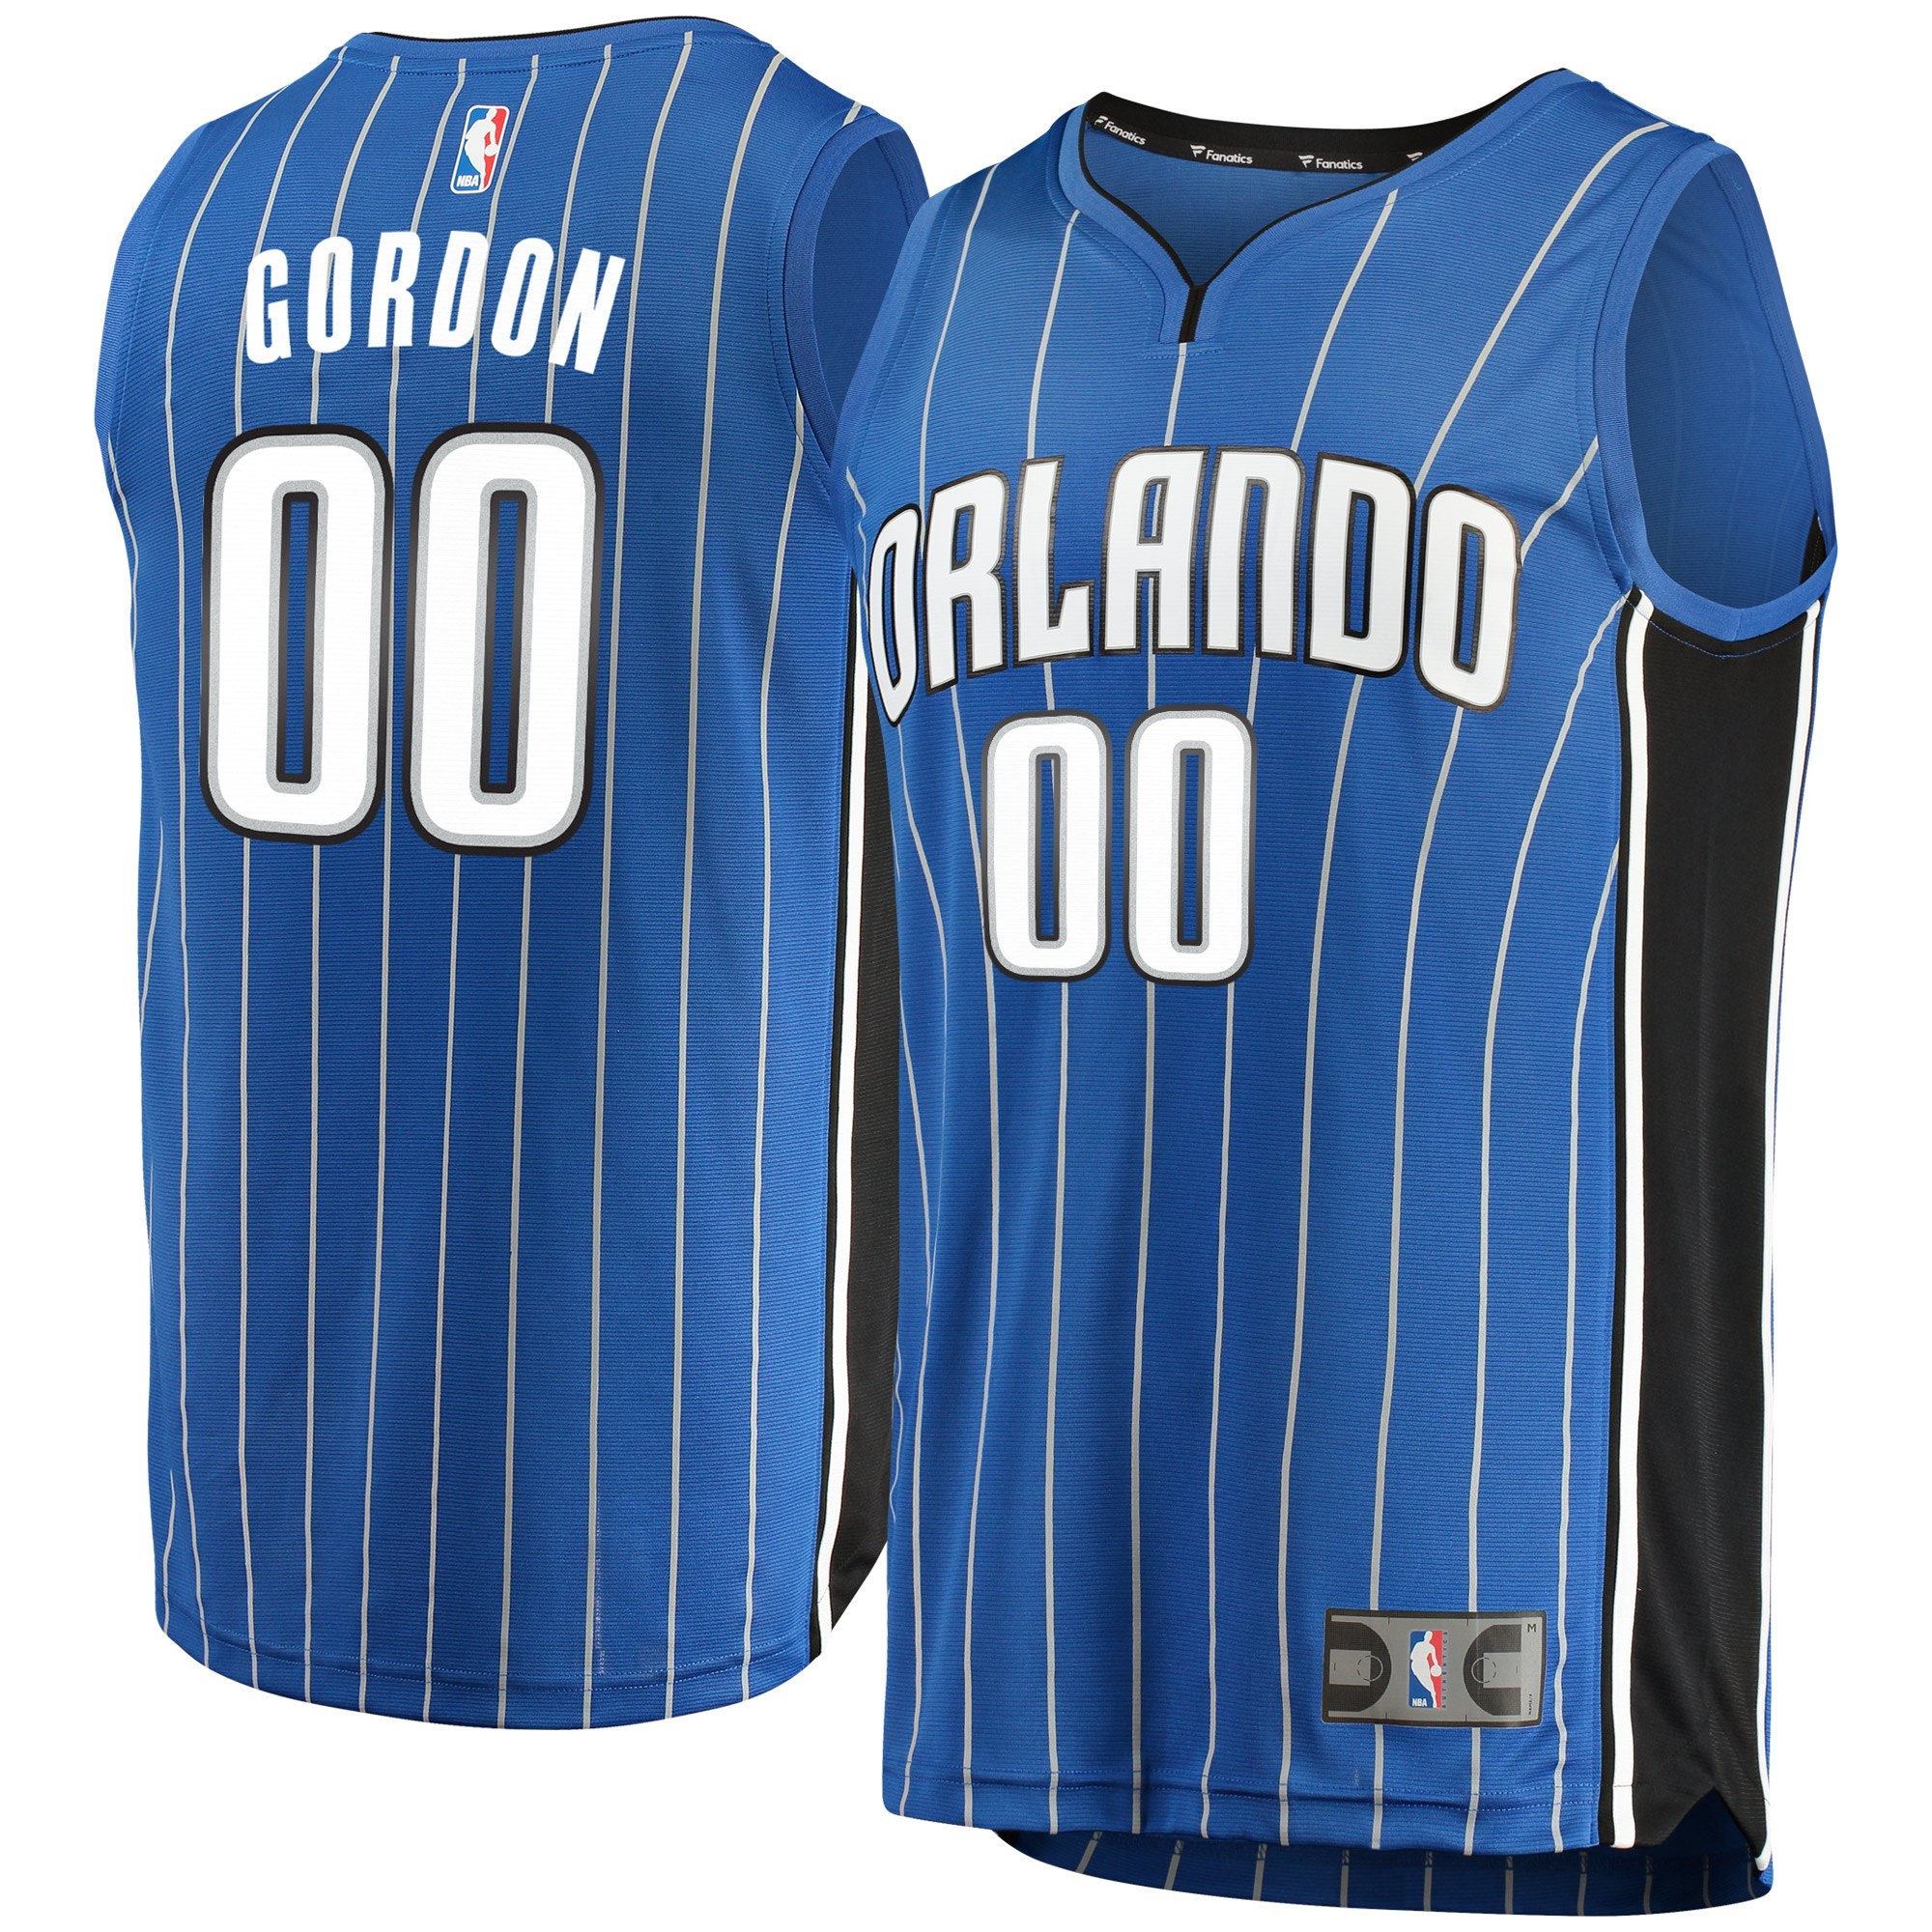 Aaron Gordon Orlando Magic Fanatics Branded Youth Fast Break Replica Jersey Blue - Icon Edition